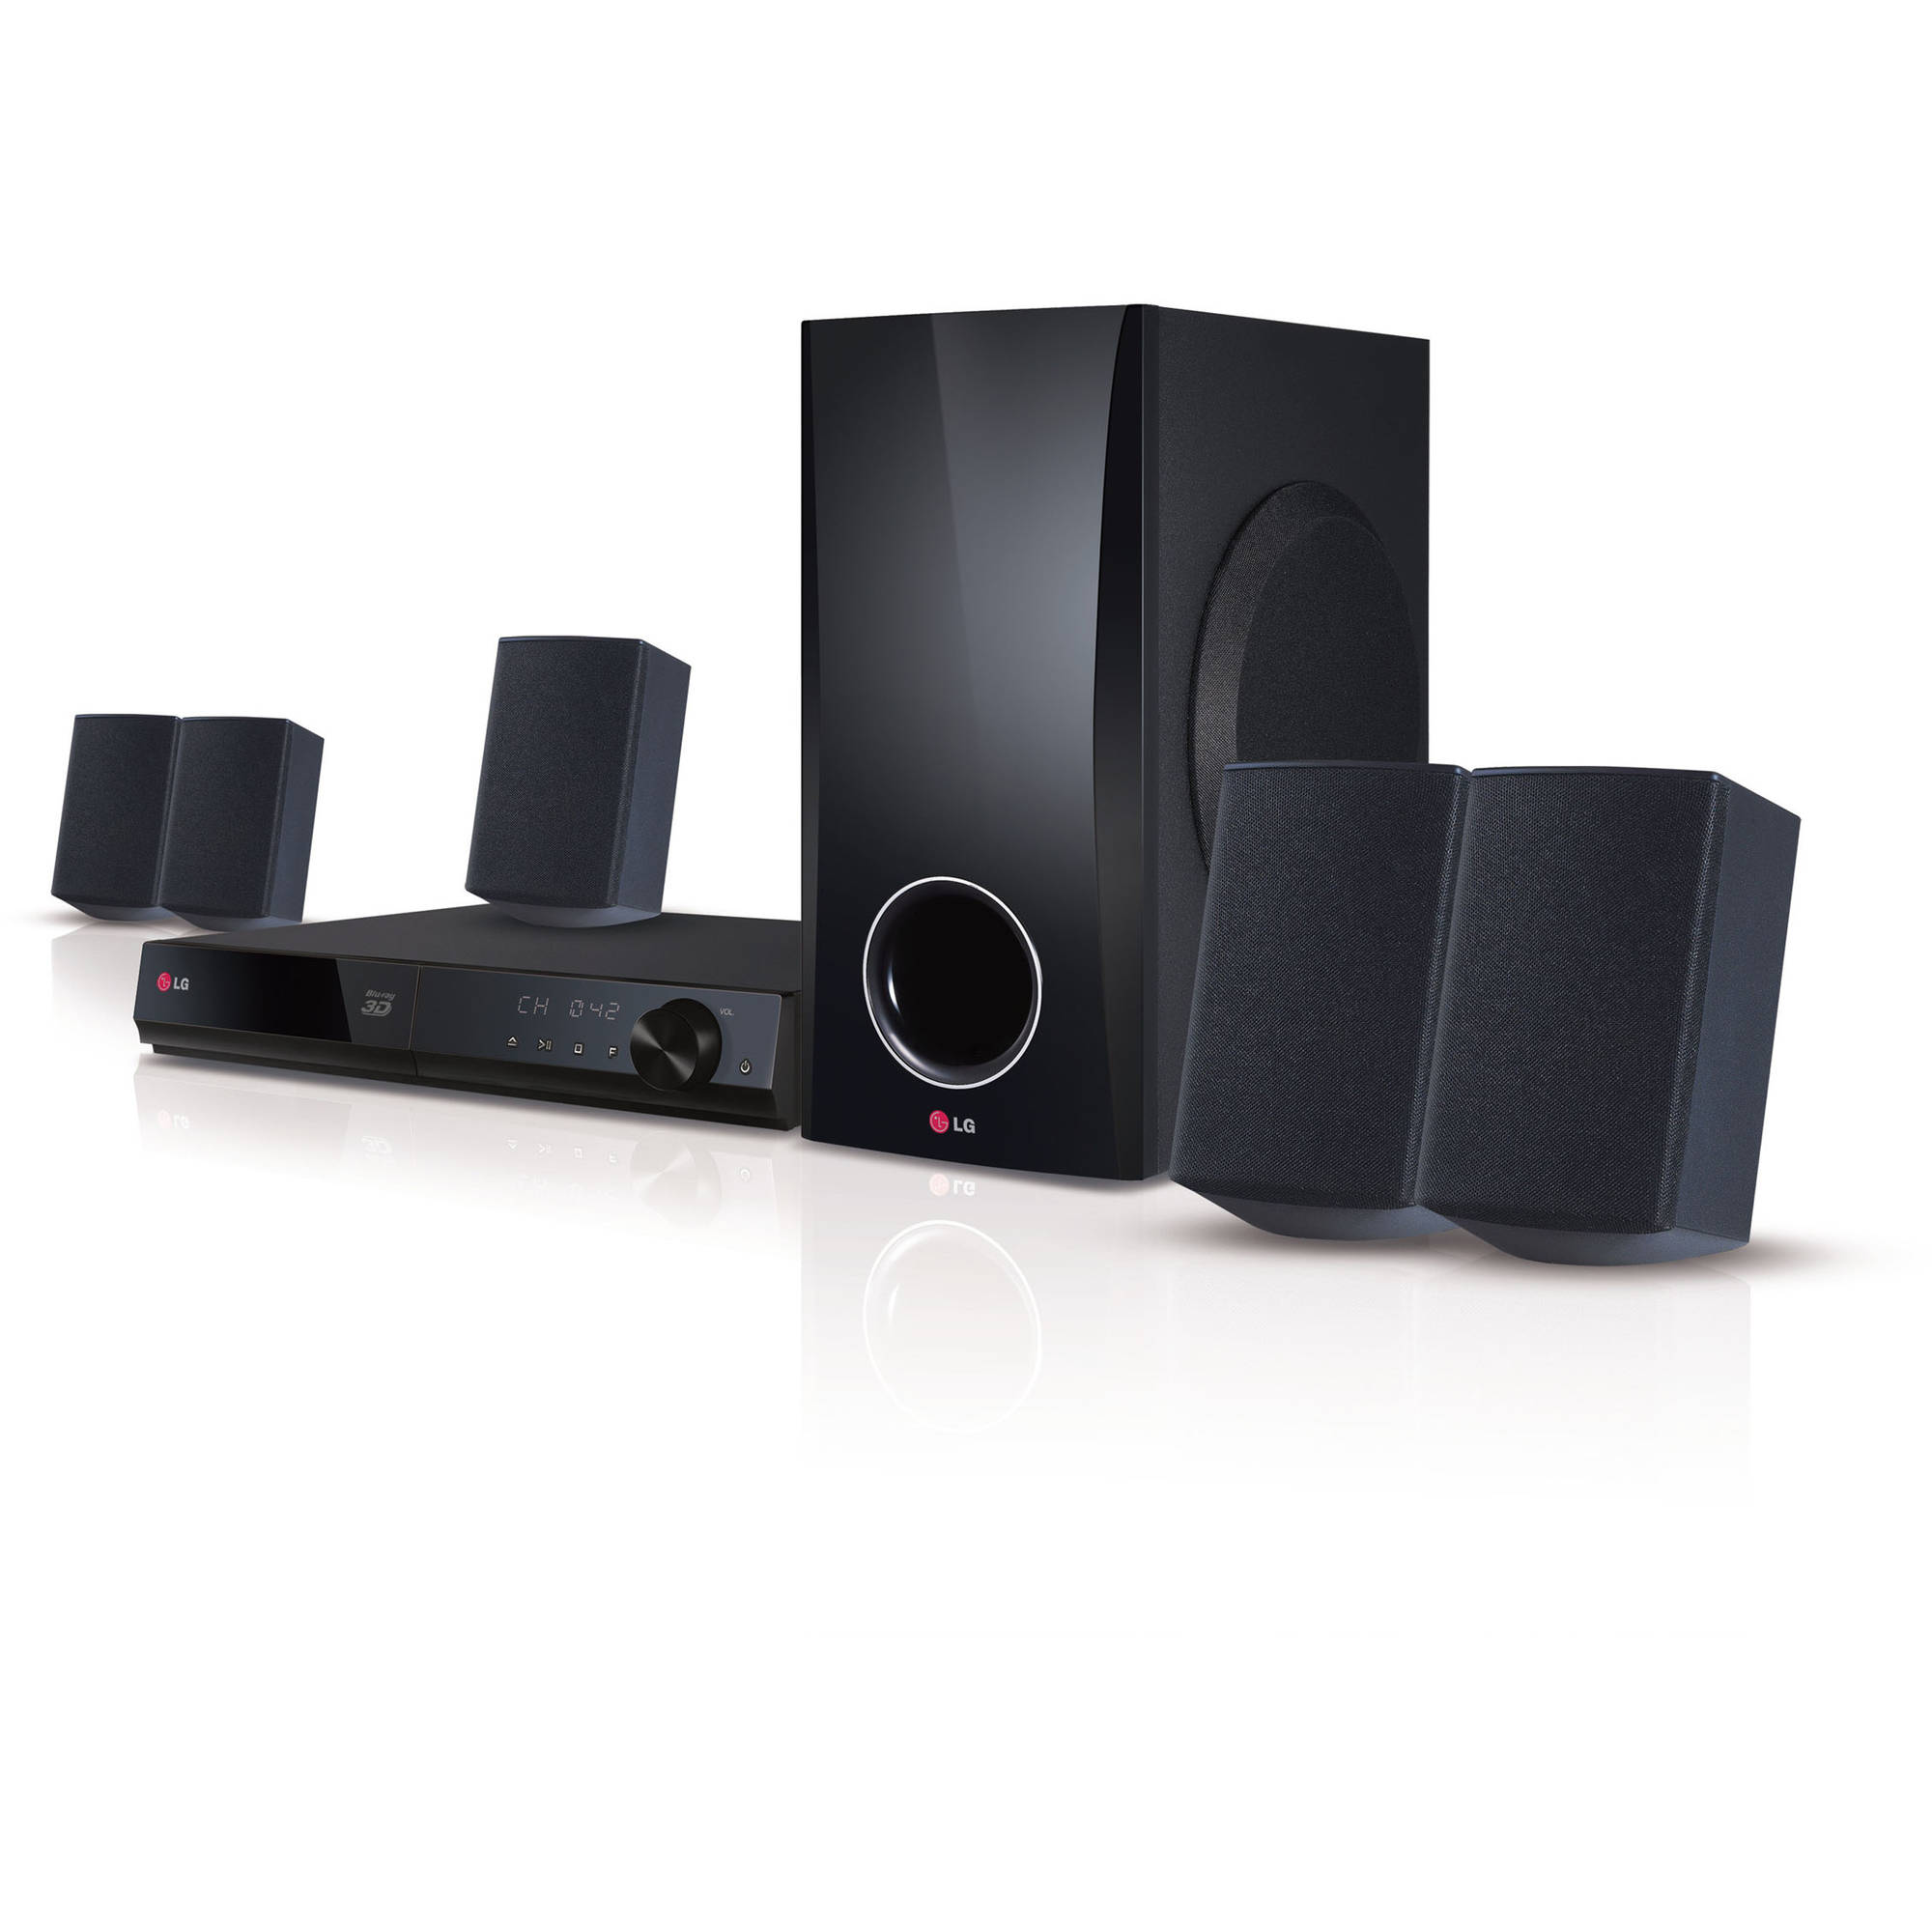 Regent home theater system model ht-2004